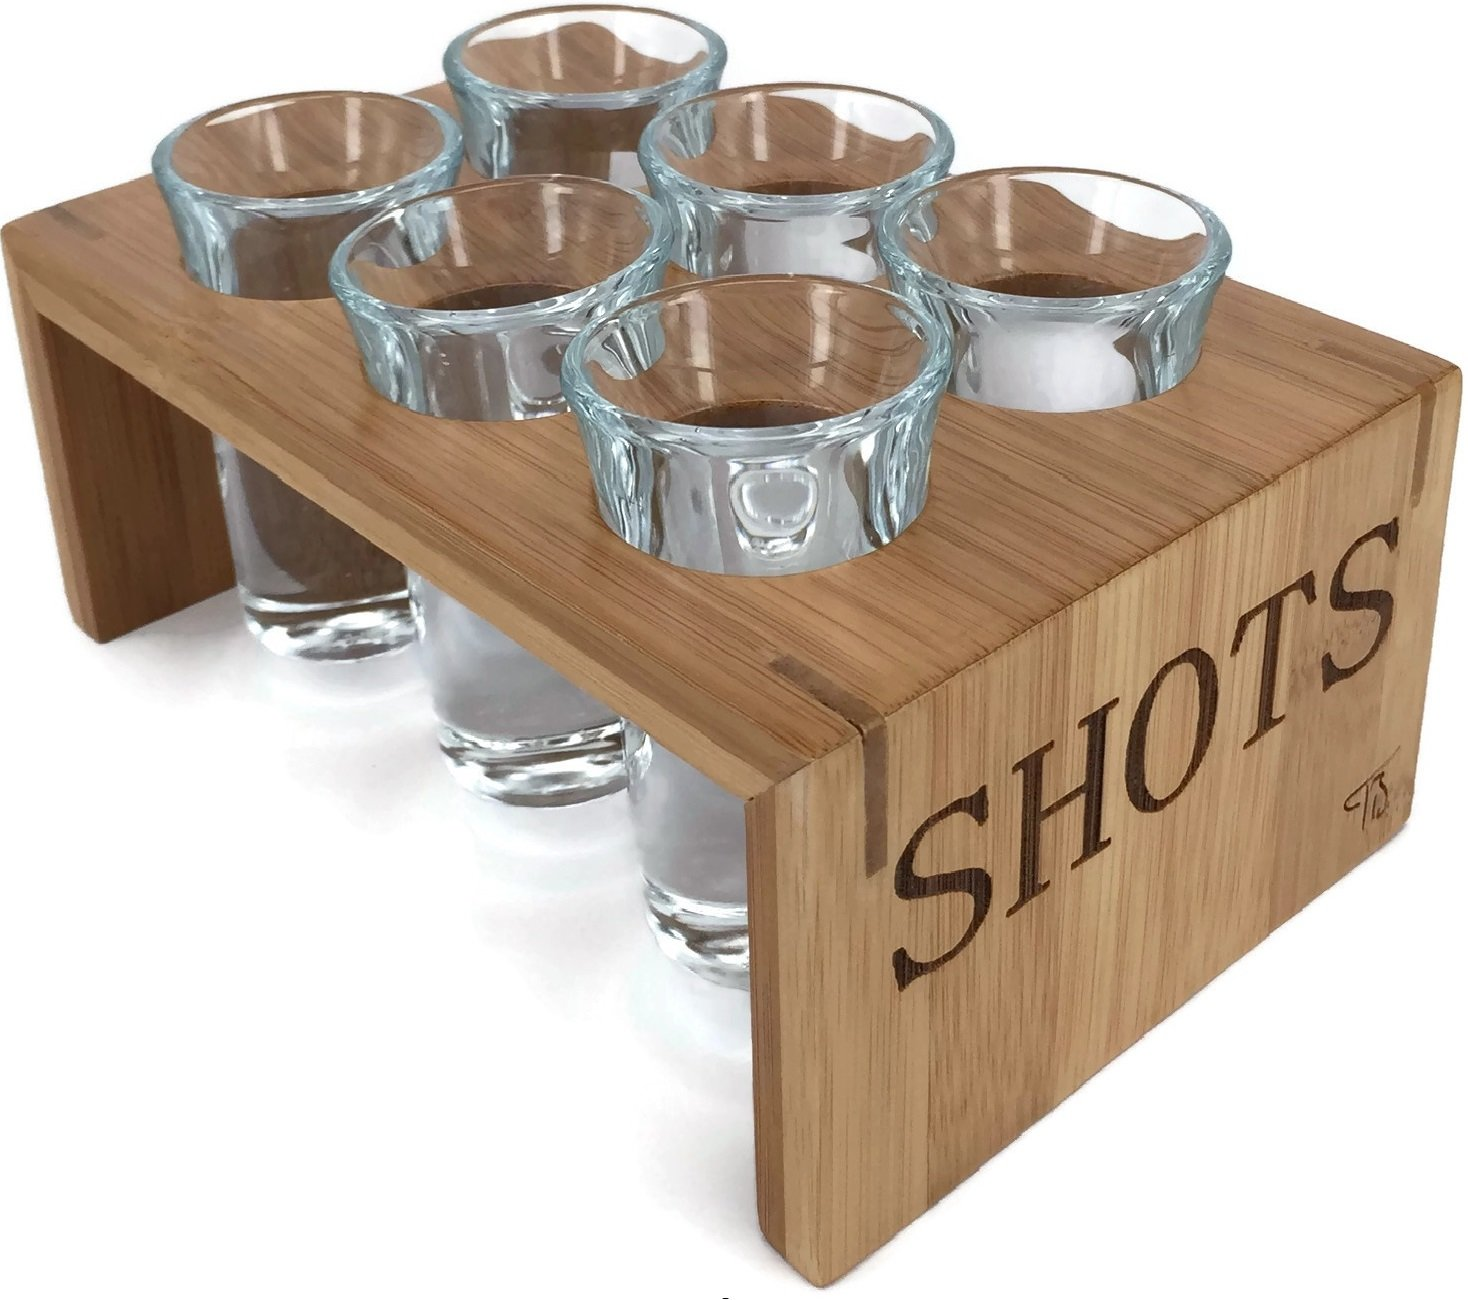 Stylish Vintage Bamboo Shot Glass Holder Set With 6 Crystal Clear Shot Glasses 1oz By Trendy Bartender Glassware and Shot Stand for Home - Professional or Amateur Bartenders and Best Gift Ideas. Frost Limited ST-6